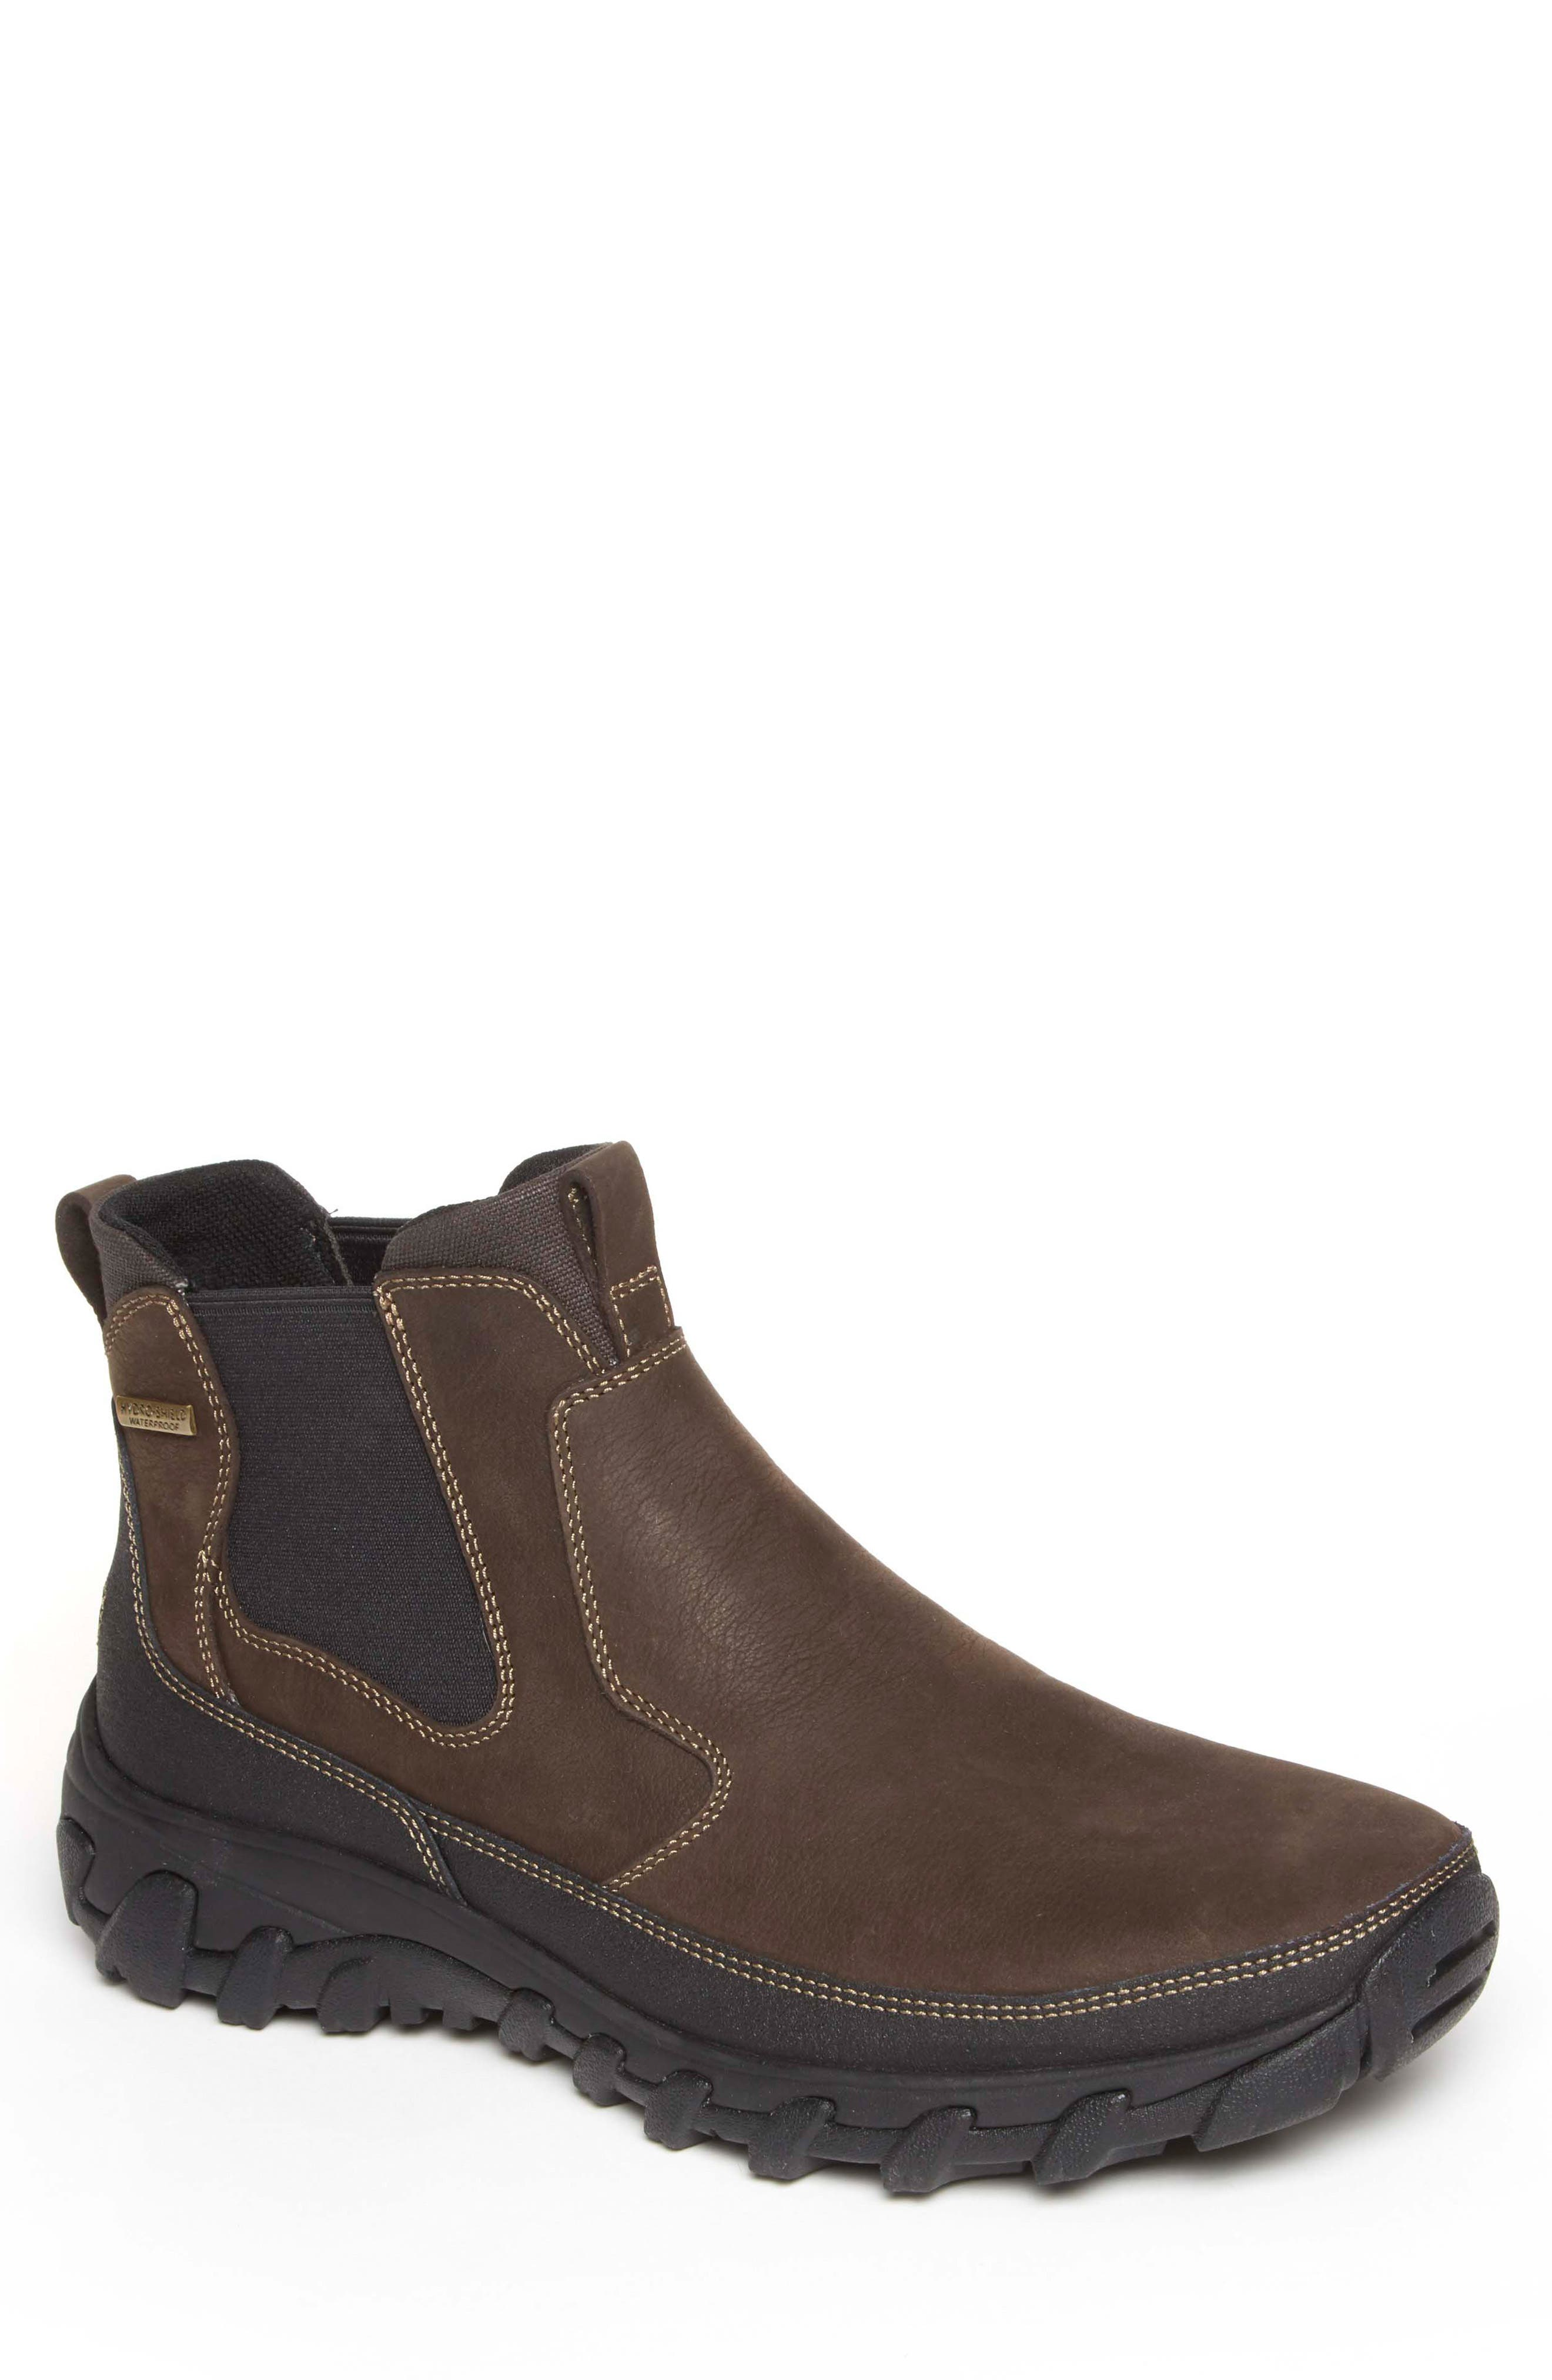 Rockport Cold Springs Plus Chelsea Boot W - Brown